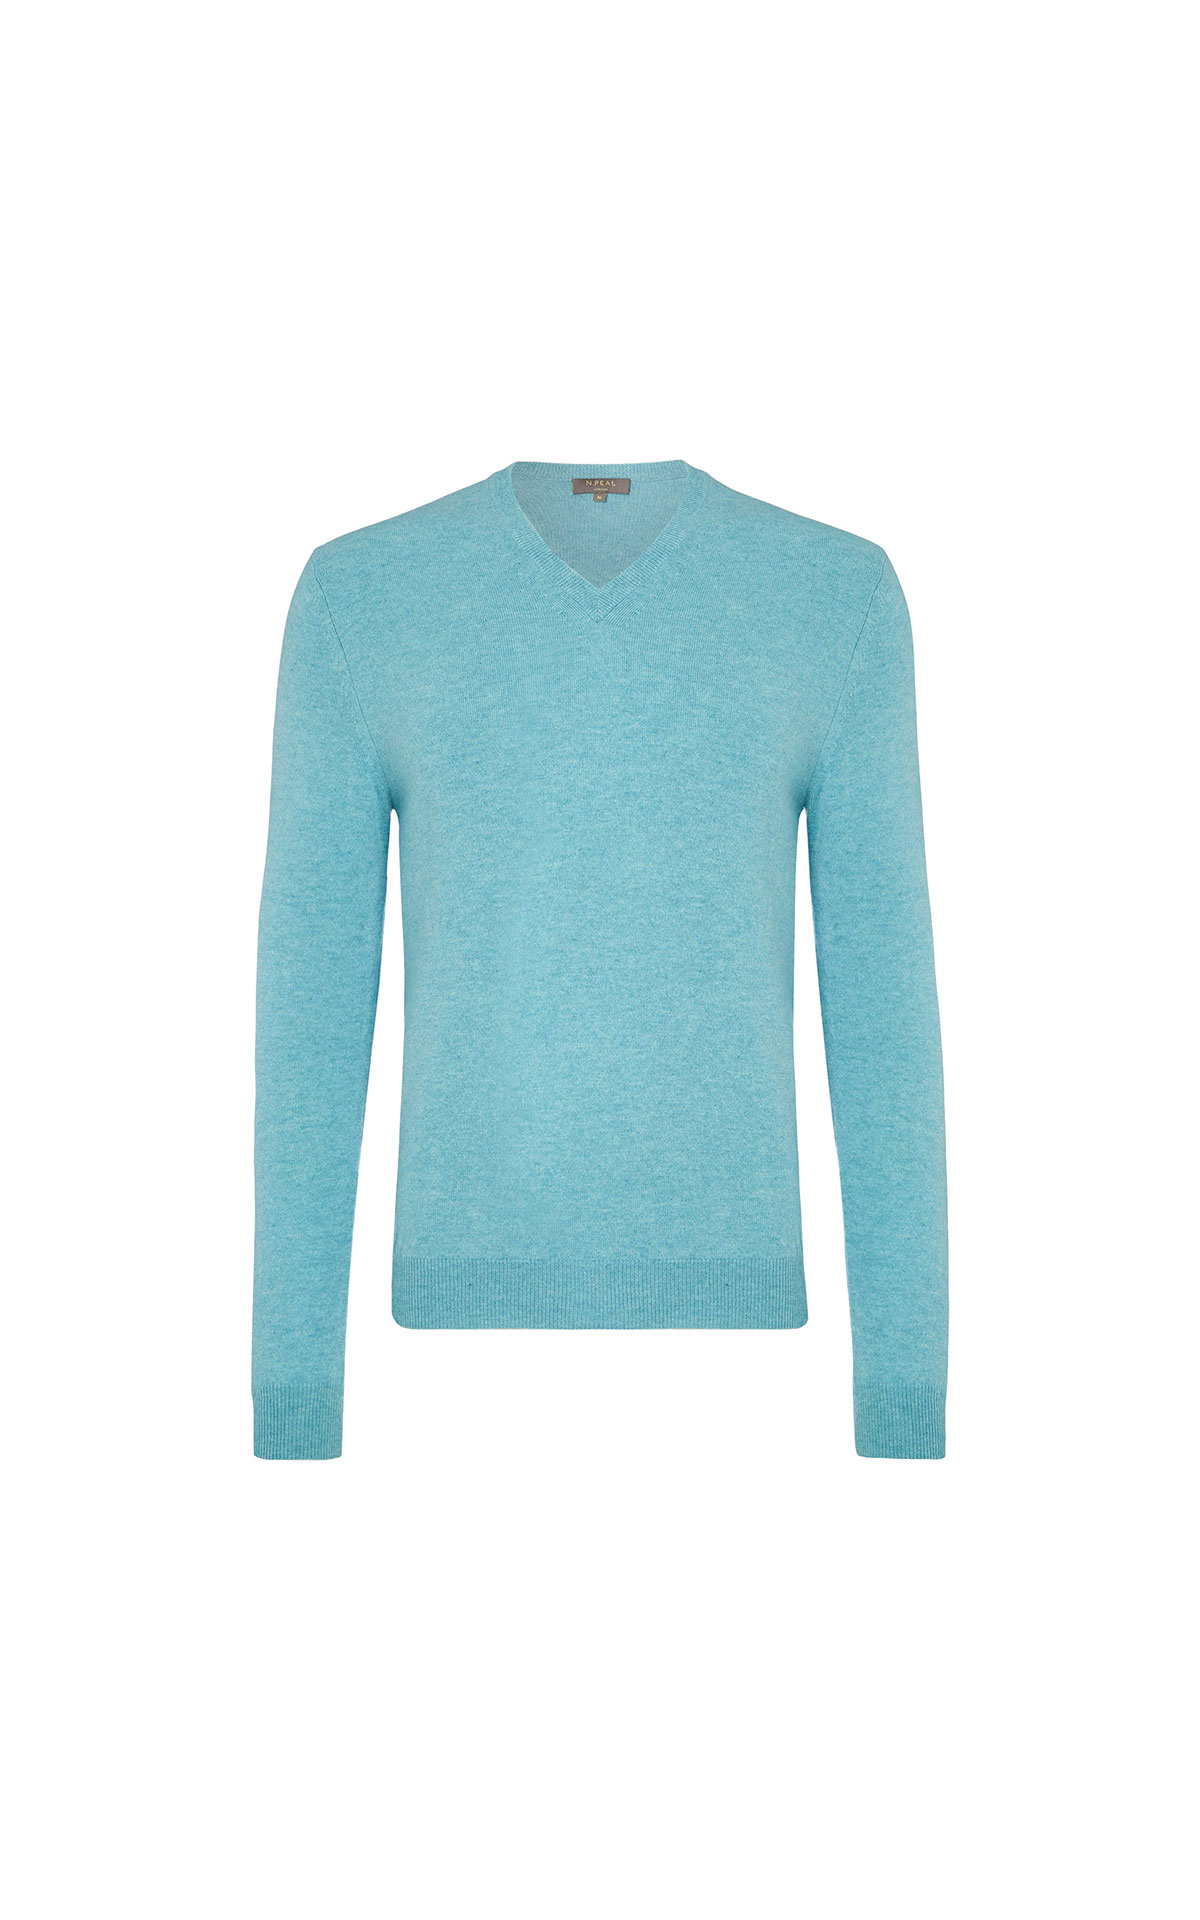 N.Peal Men's v-neck from Bicester Village